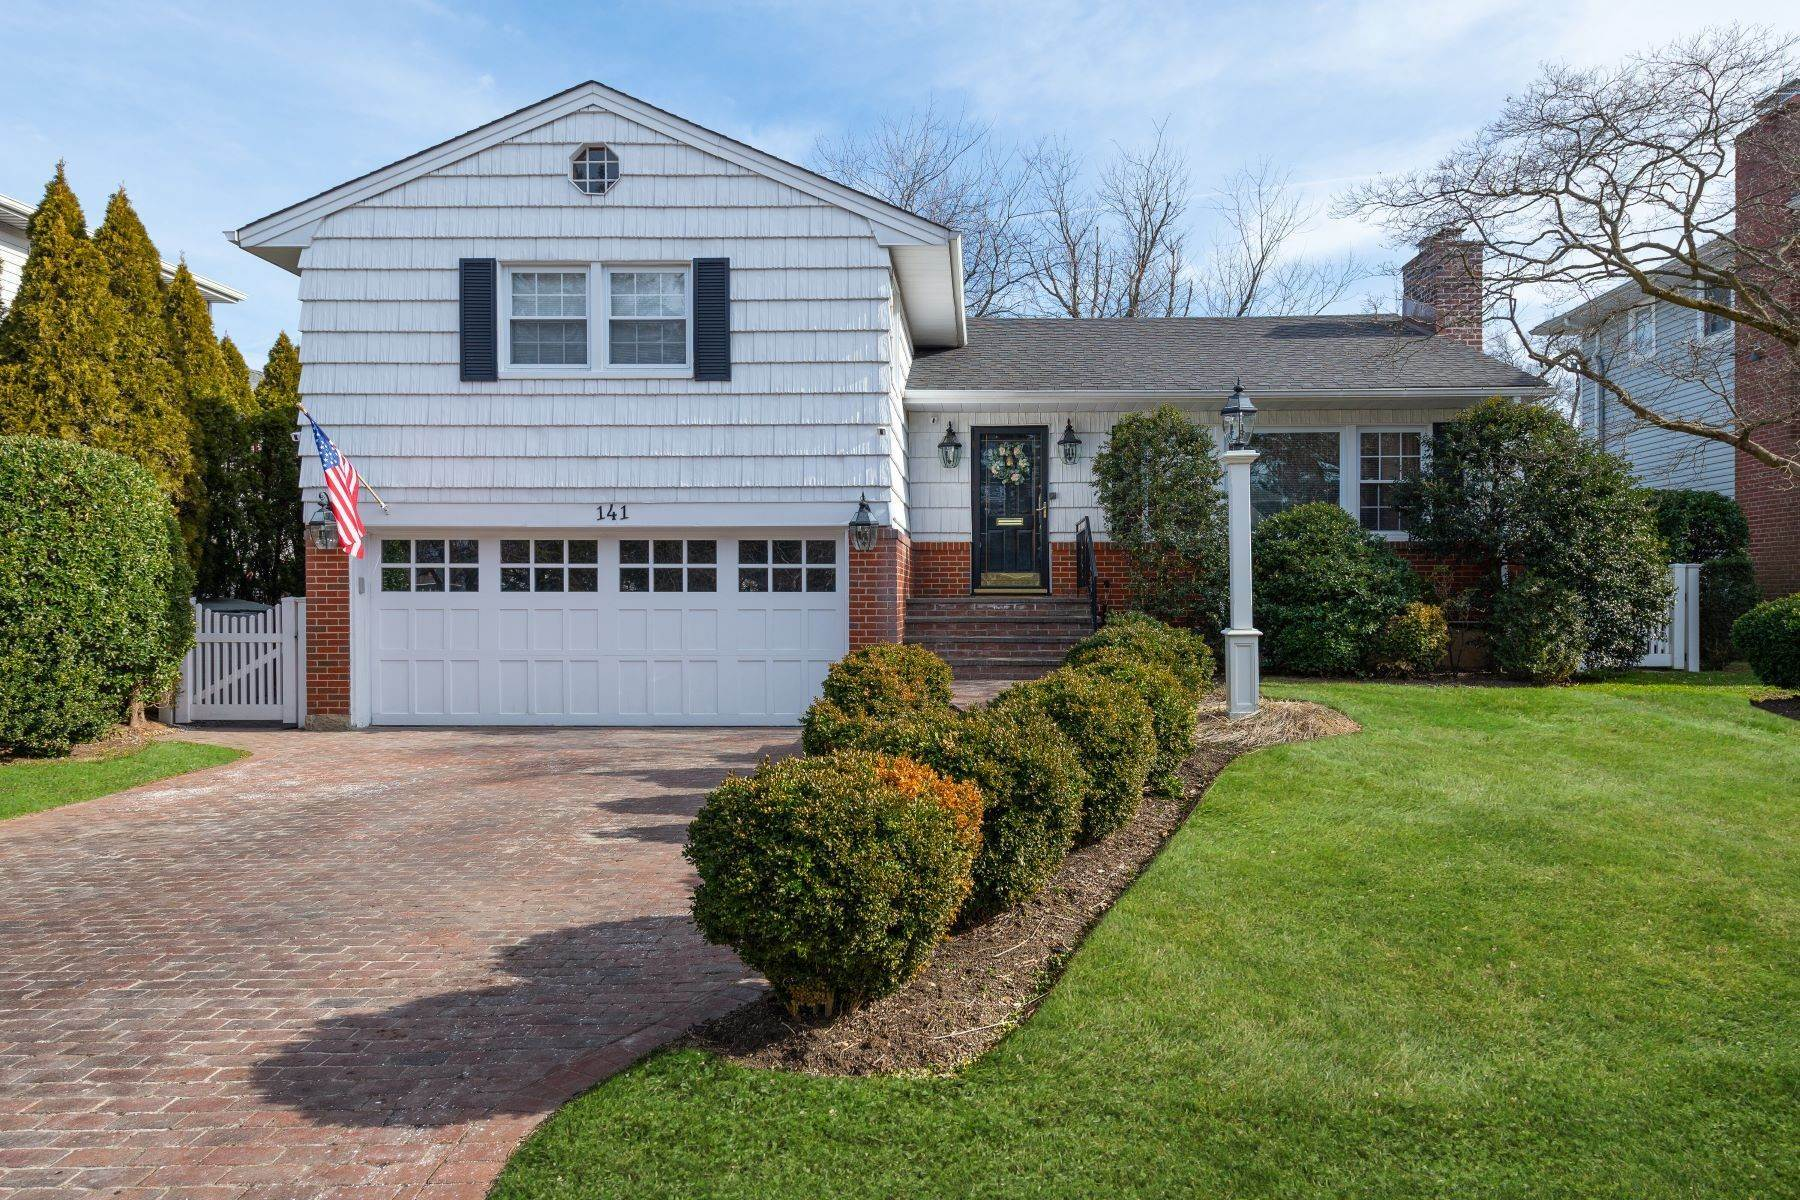 Single Family Homes for Sale at 141 Hayes Street, Garden City, NY 11530 141 Hayes Street Garden City, New York 11530 United States